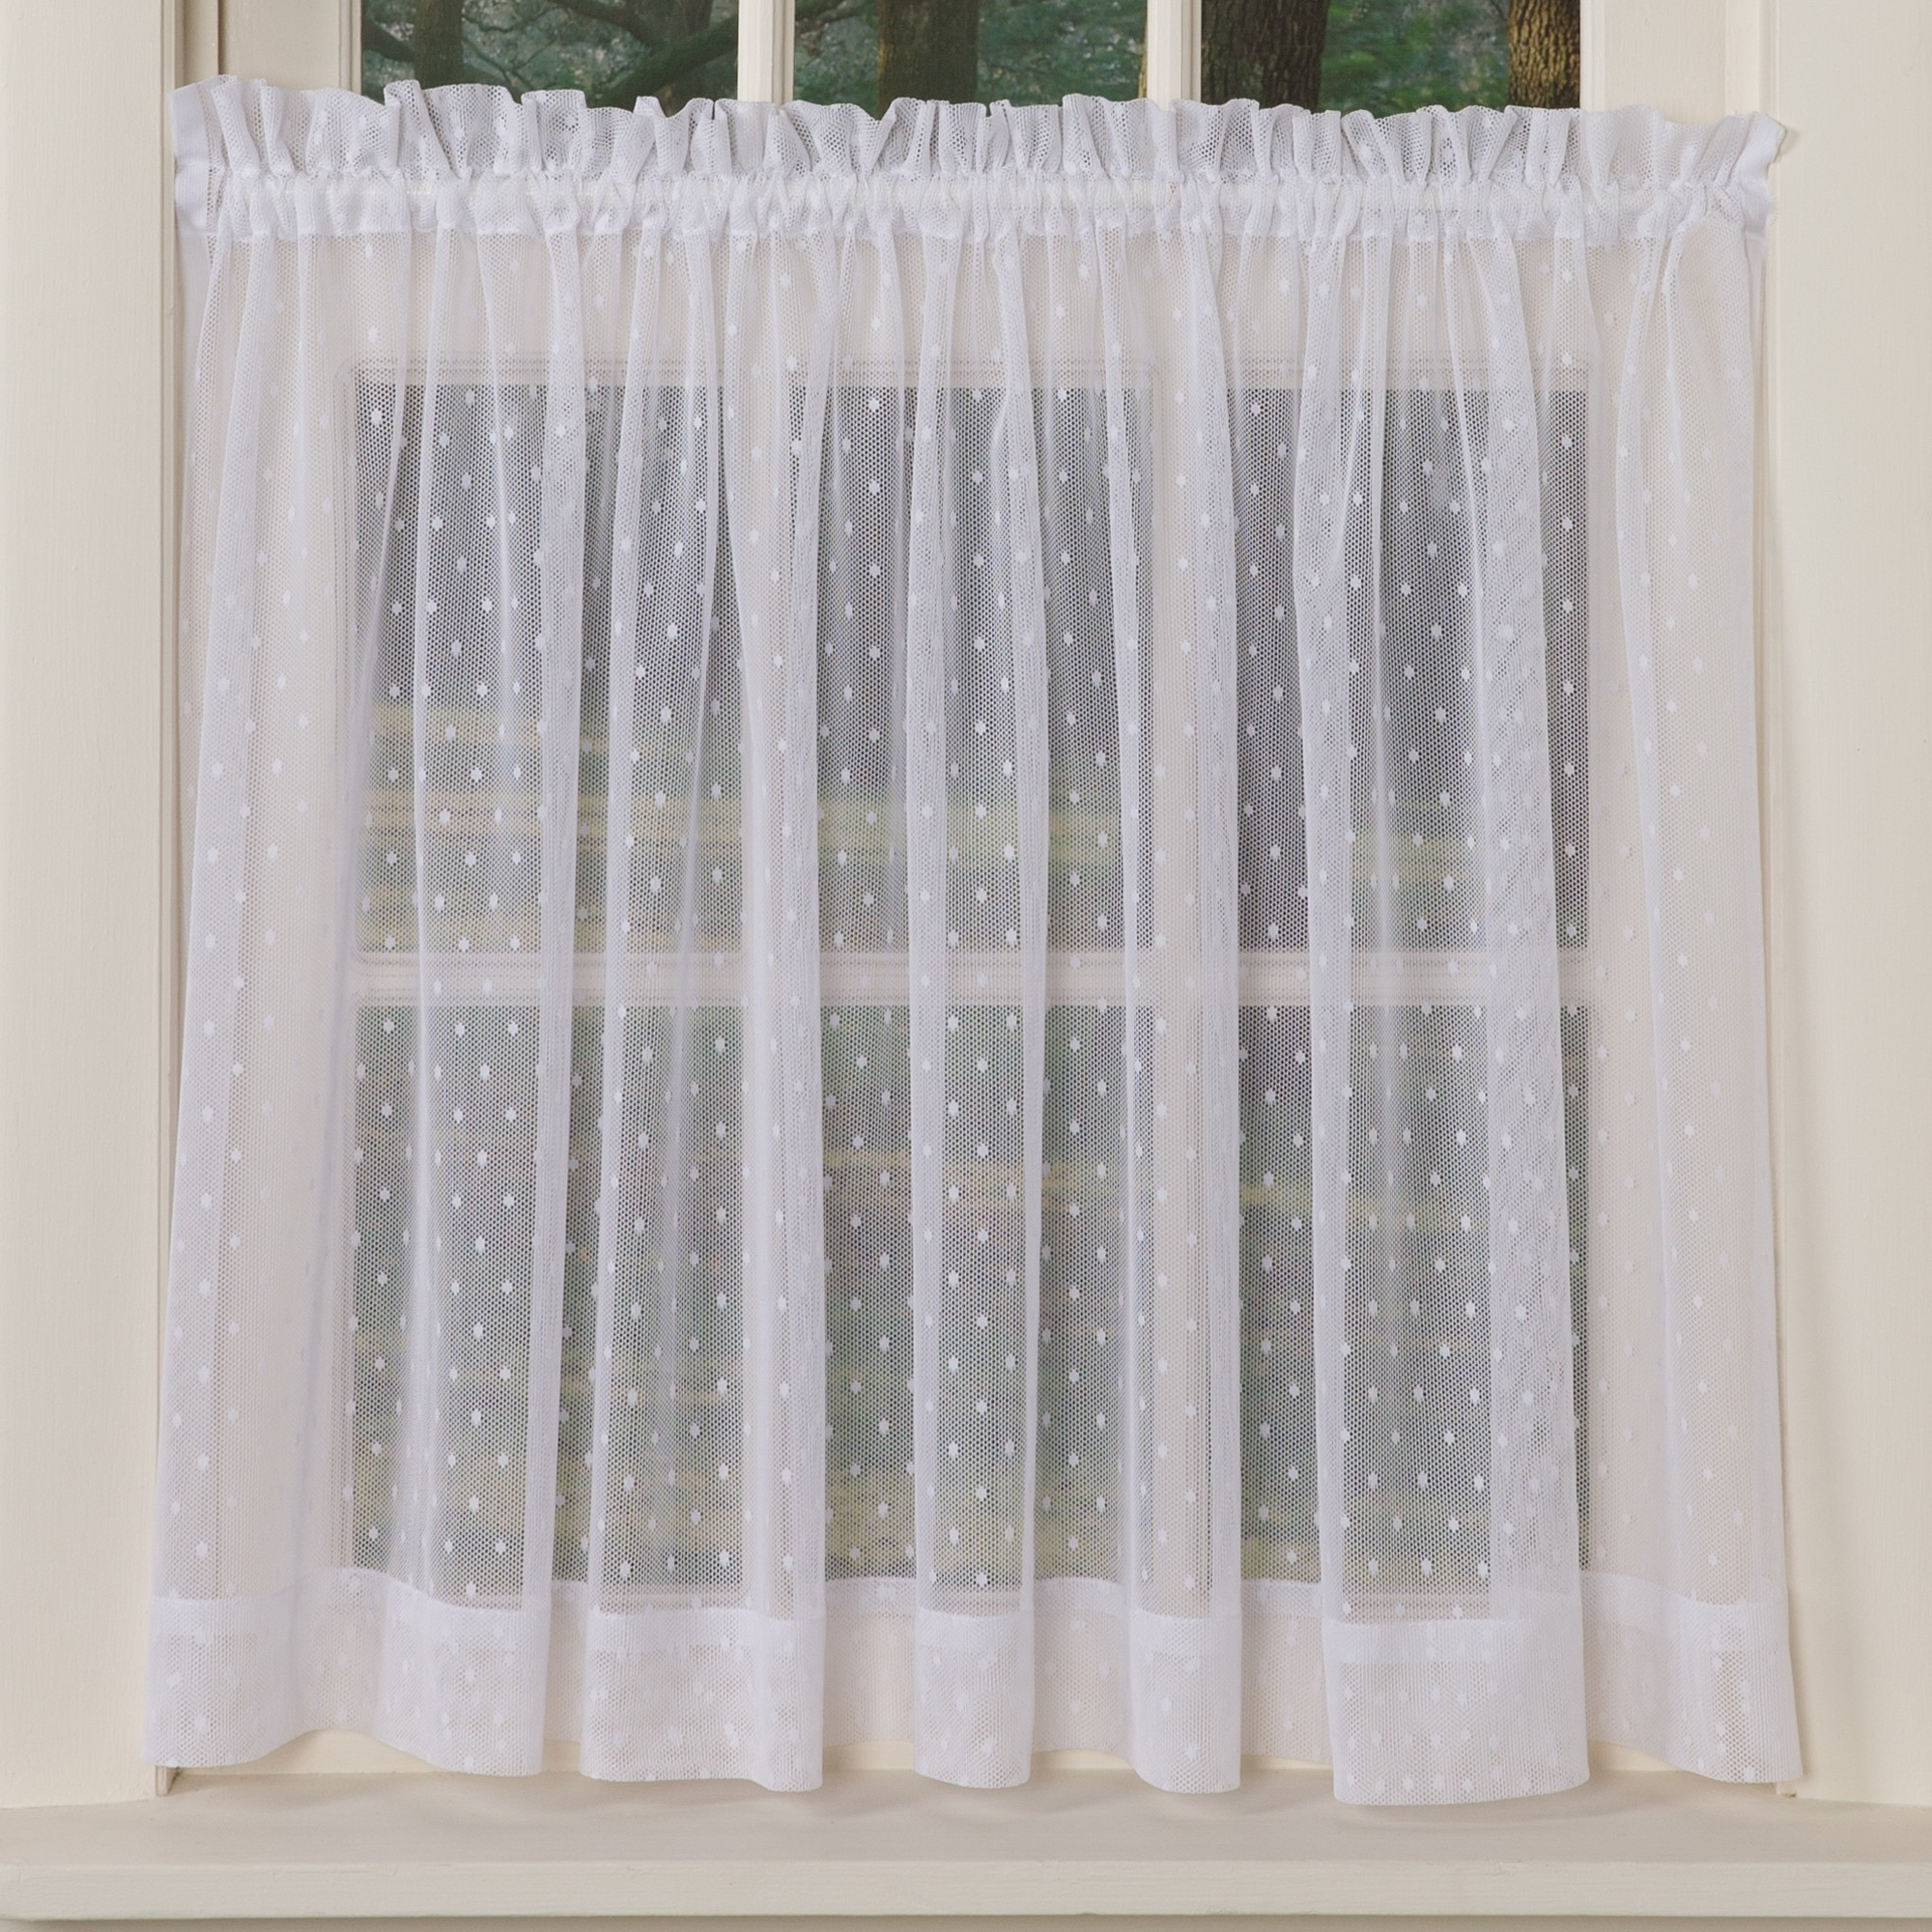 Dotted Sheer Curtains Sturbridge Yankee Workshop Throughout White Sheer Cotton Curtains (Image 6 of 15)